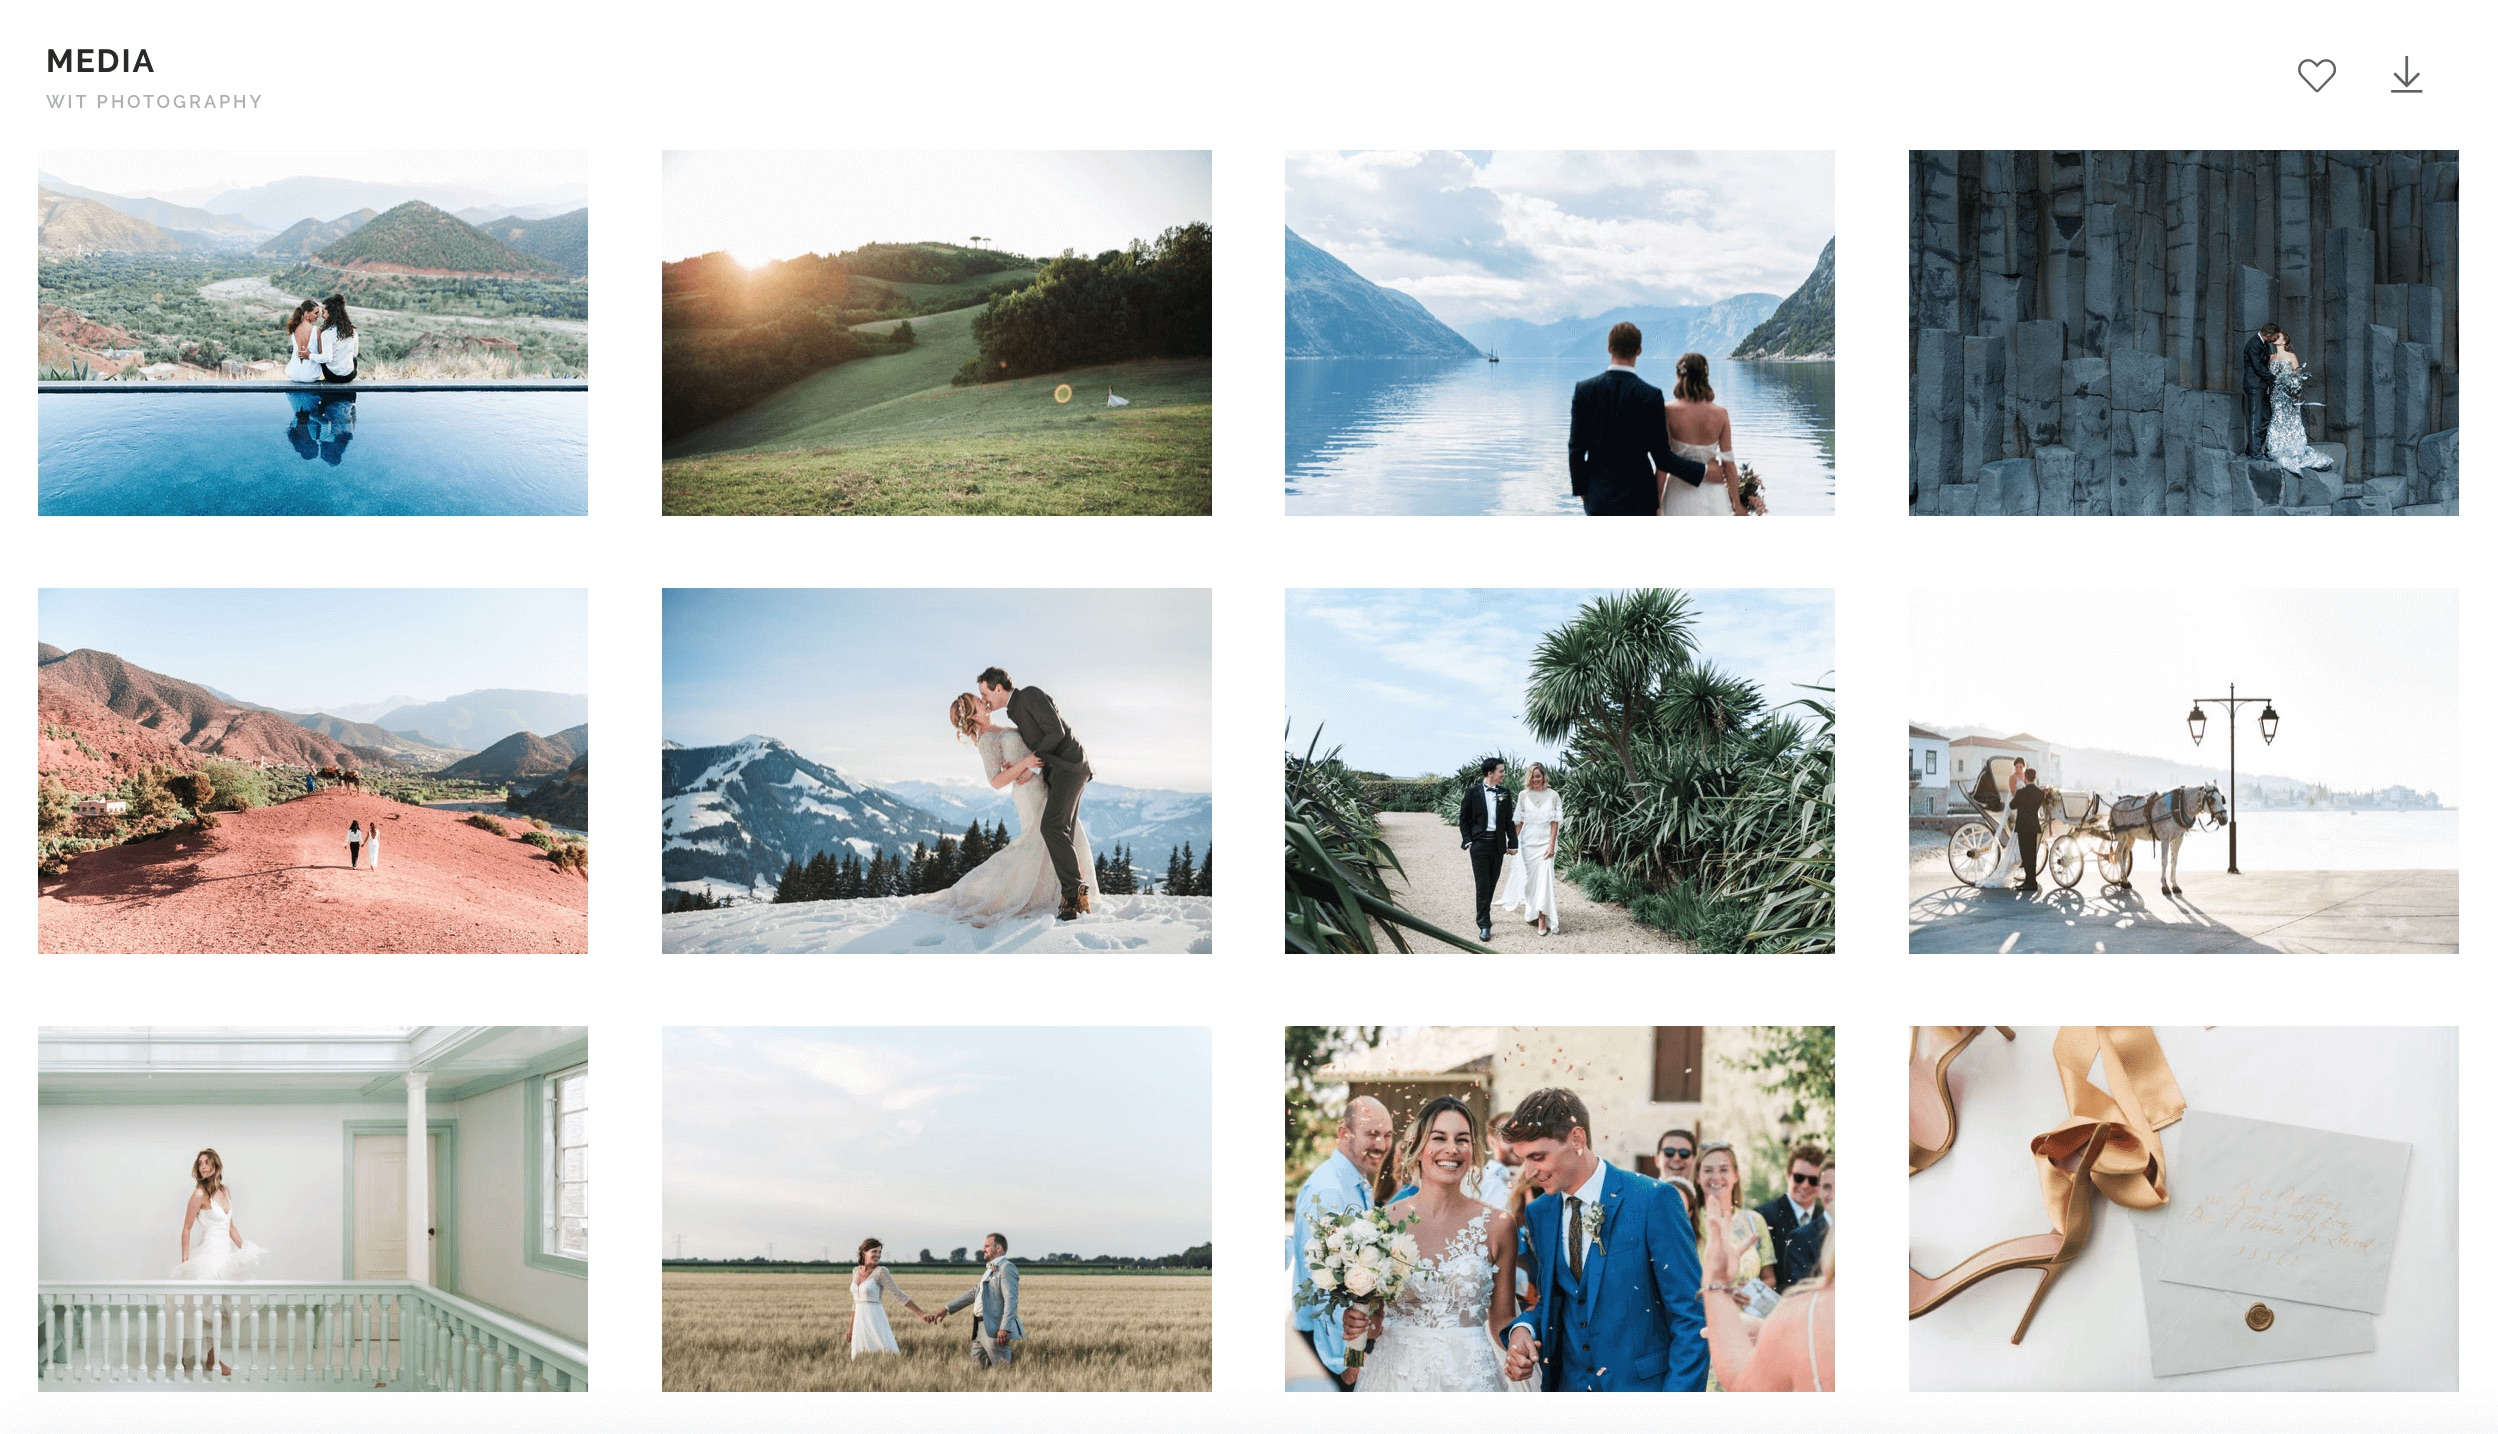 Visual content: Online gallery for press and media who write and interview trendwatcher and expert about destination weddings, elopements, wedding photography and travel.